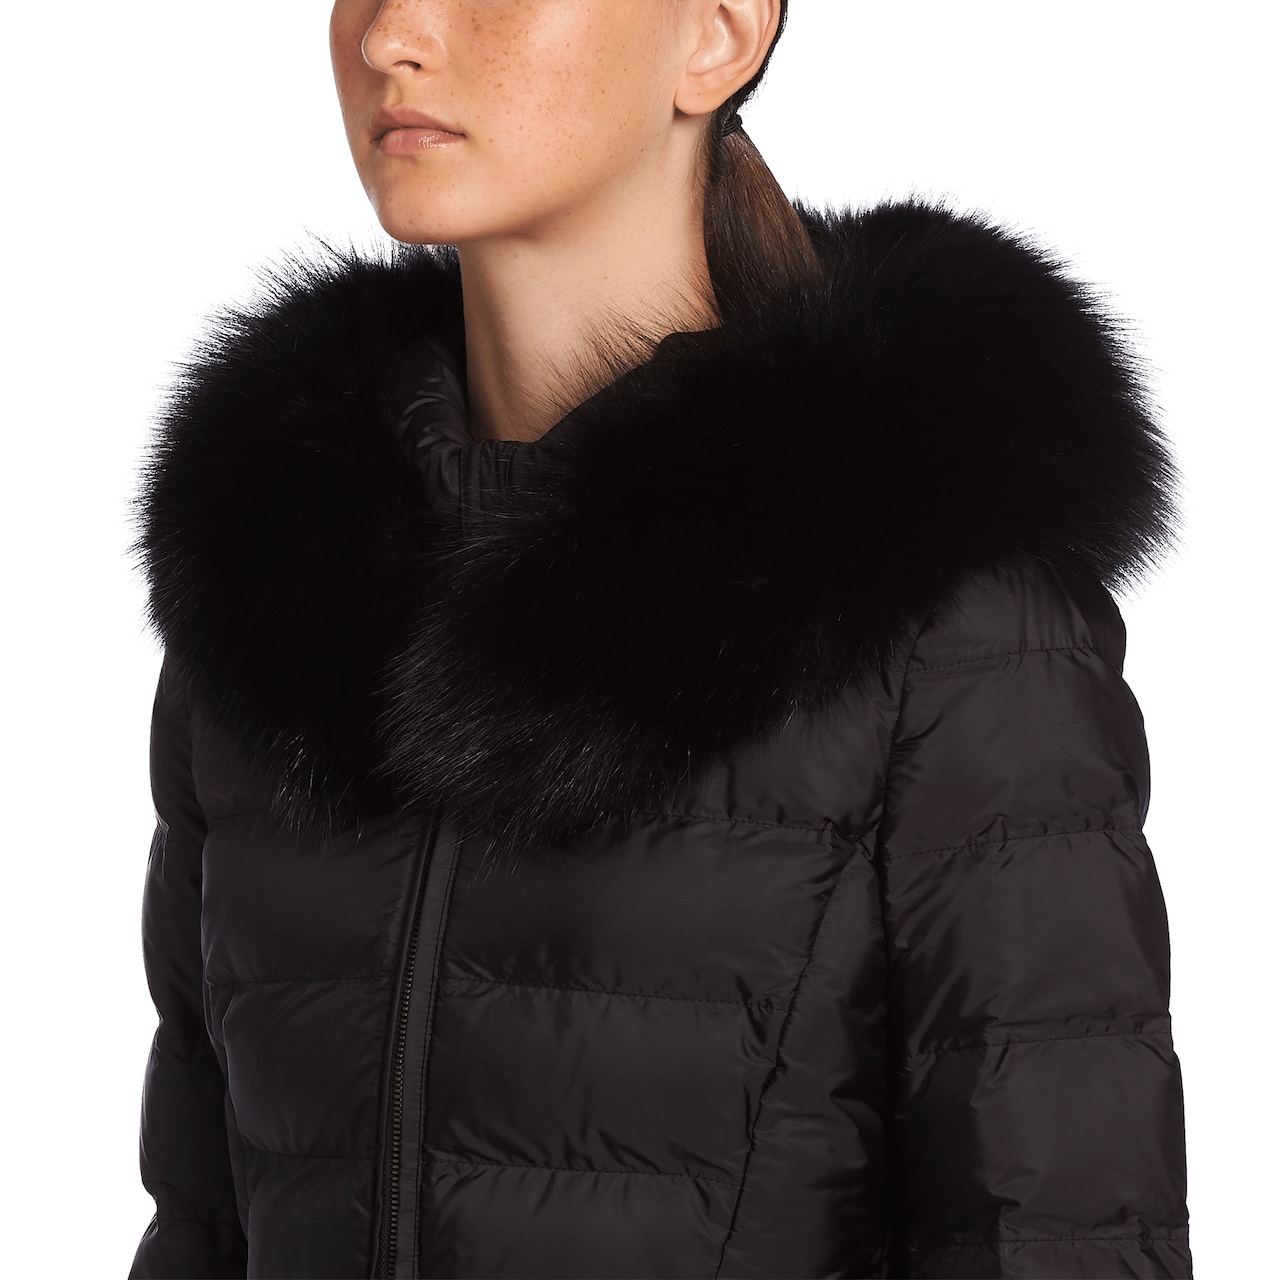 Prada Fur-Trimmed Nylon Down Jacket 5